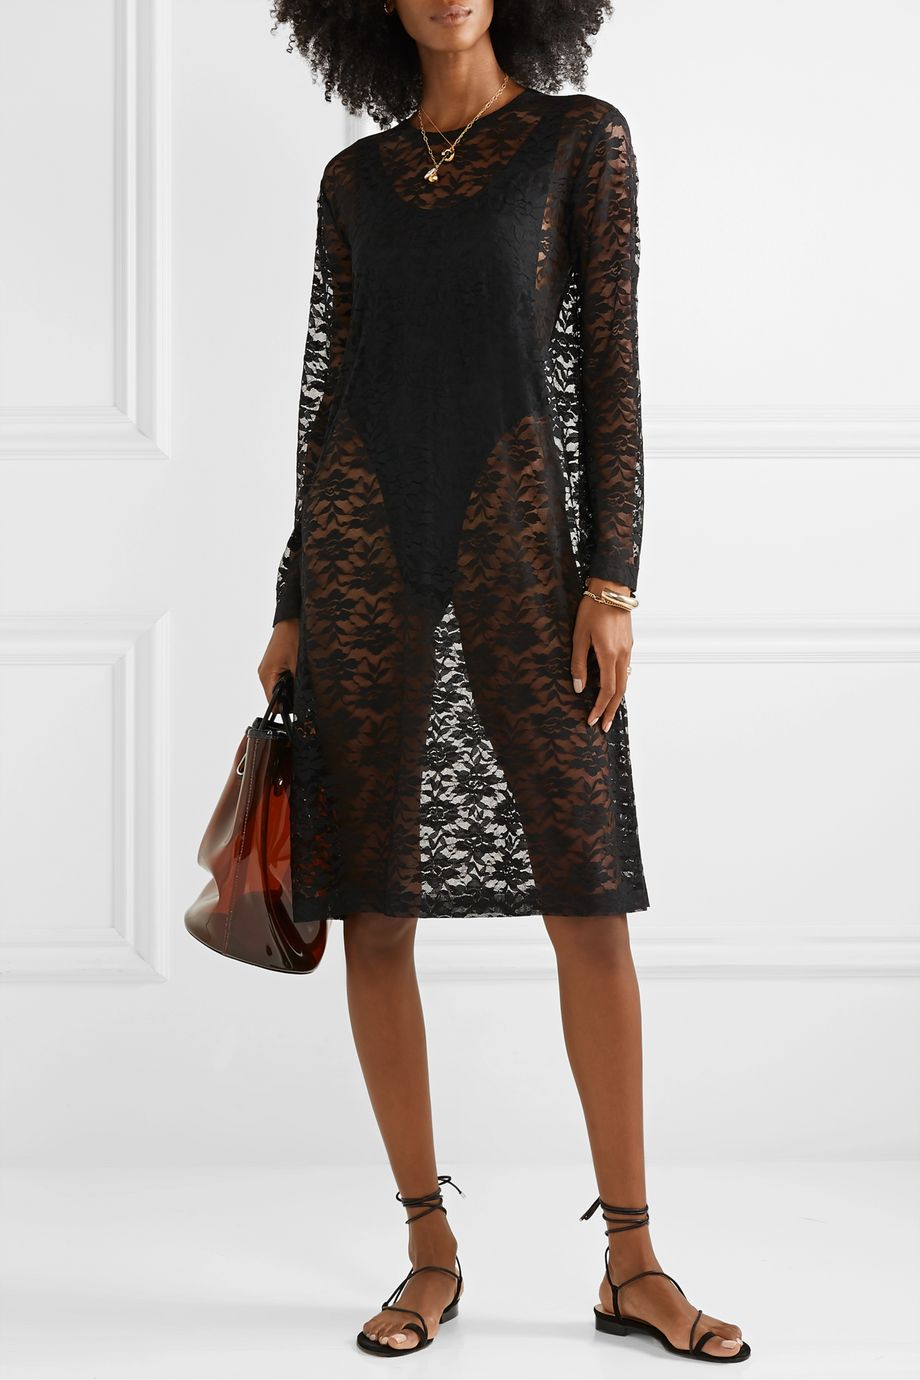 Norma Kamali Stretch-lace dress